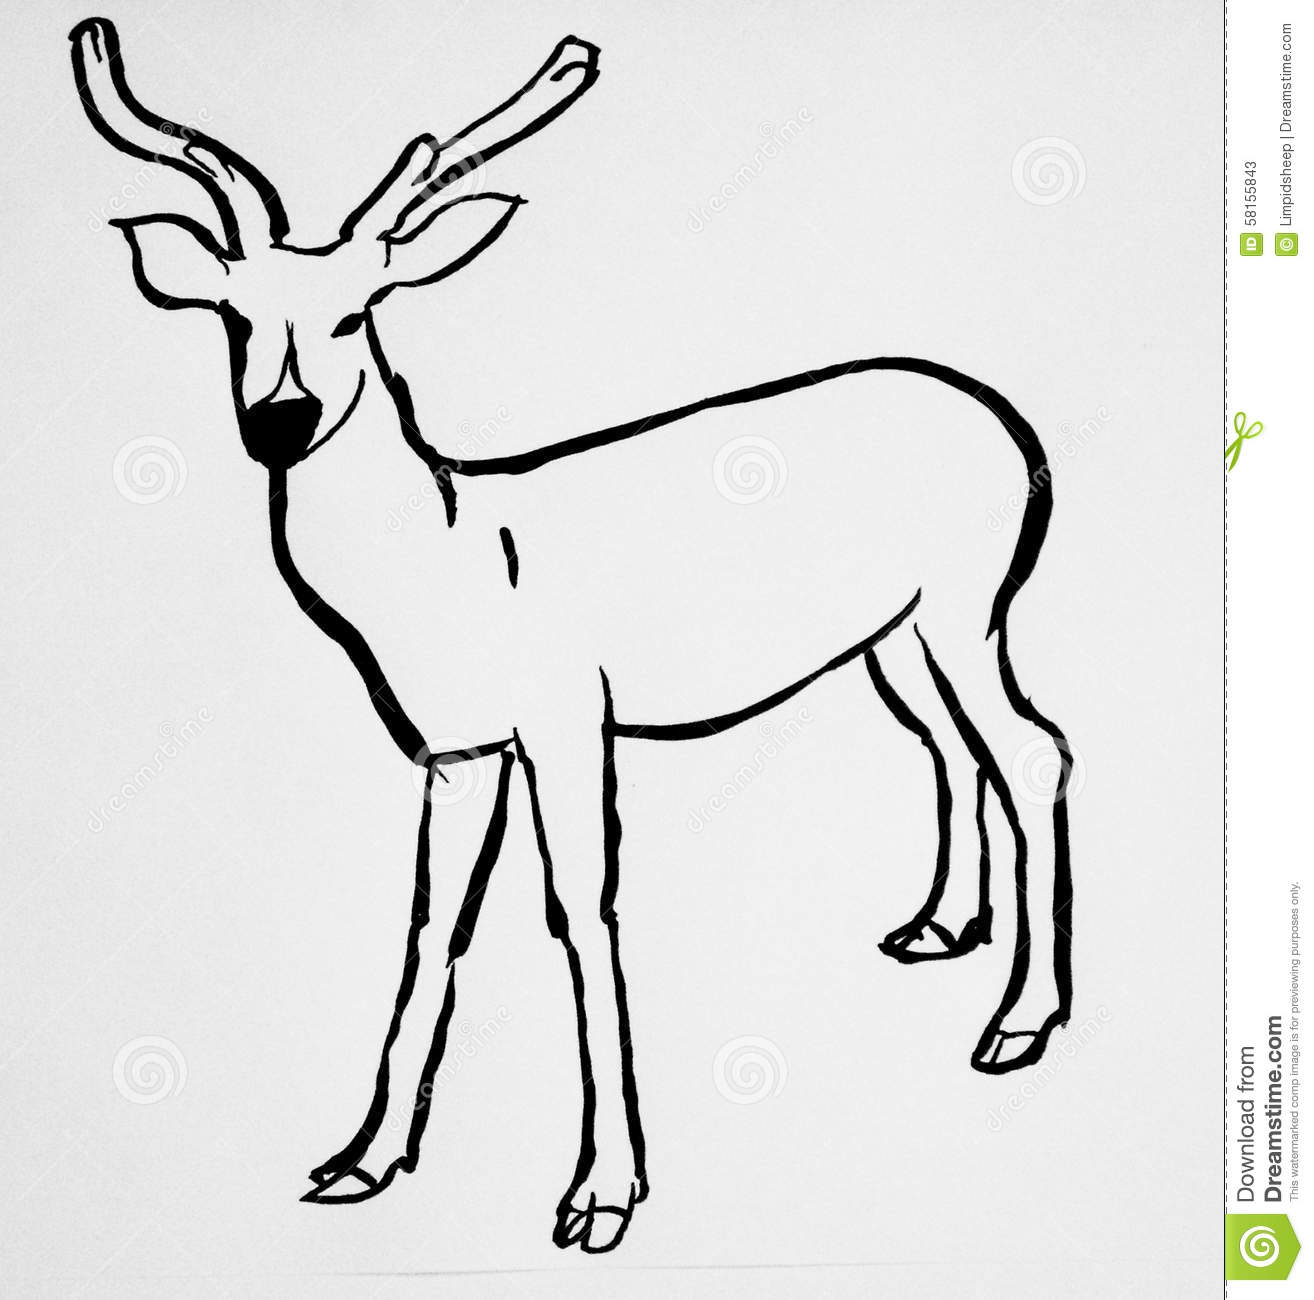 Deer Contour Line Drawing : Deer contour drawing illustration isolated stock vector